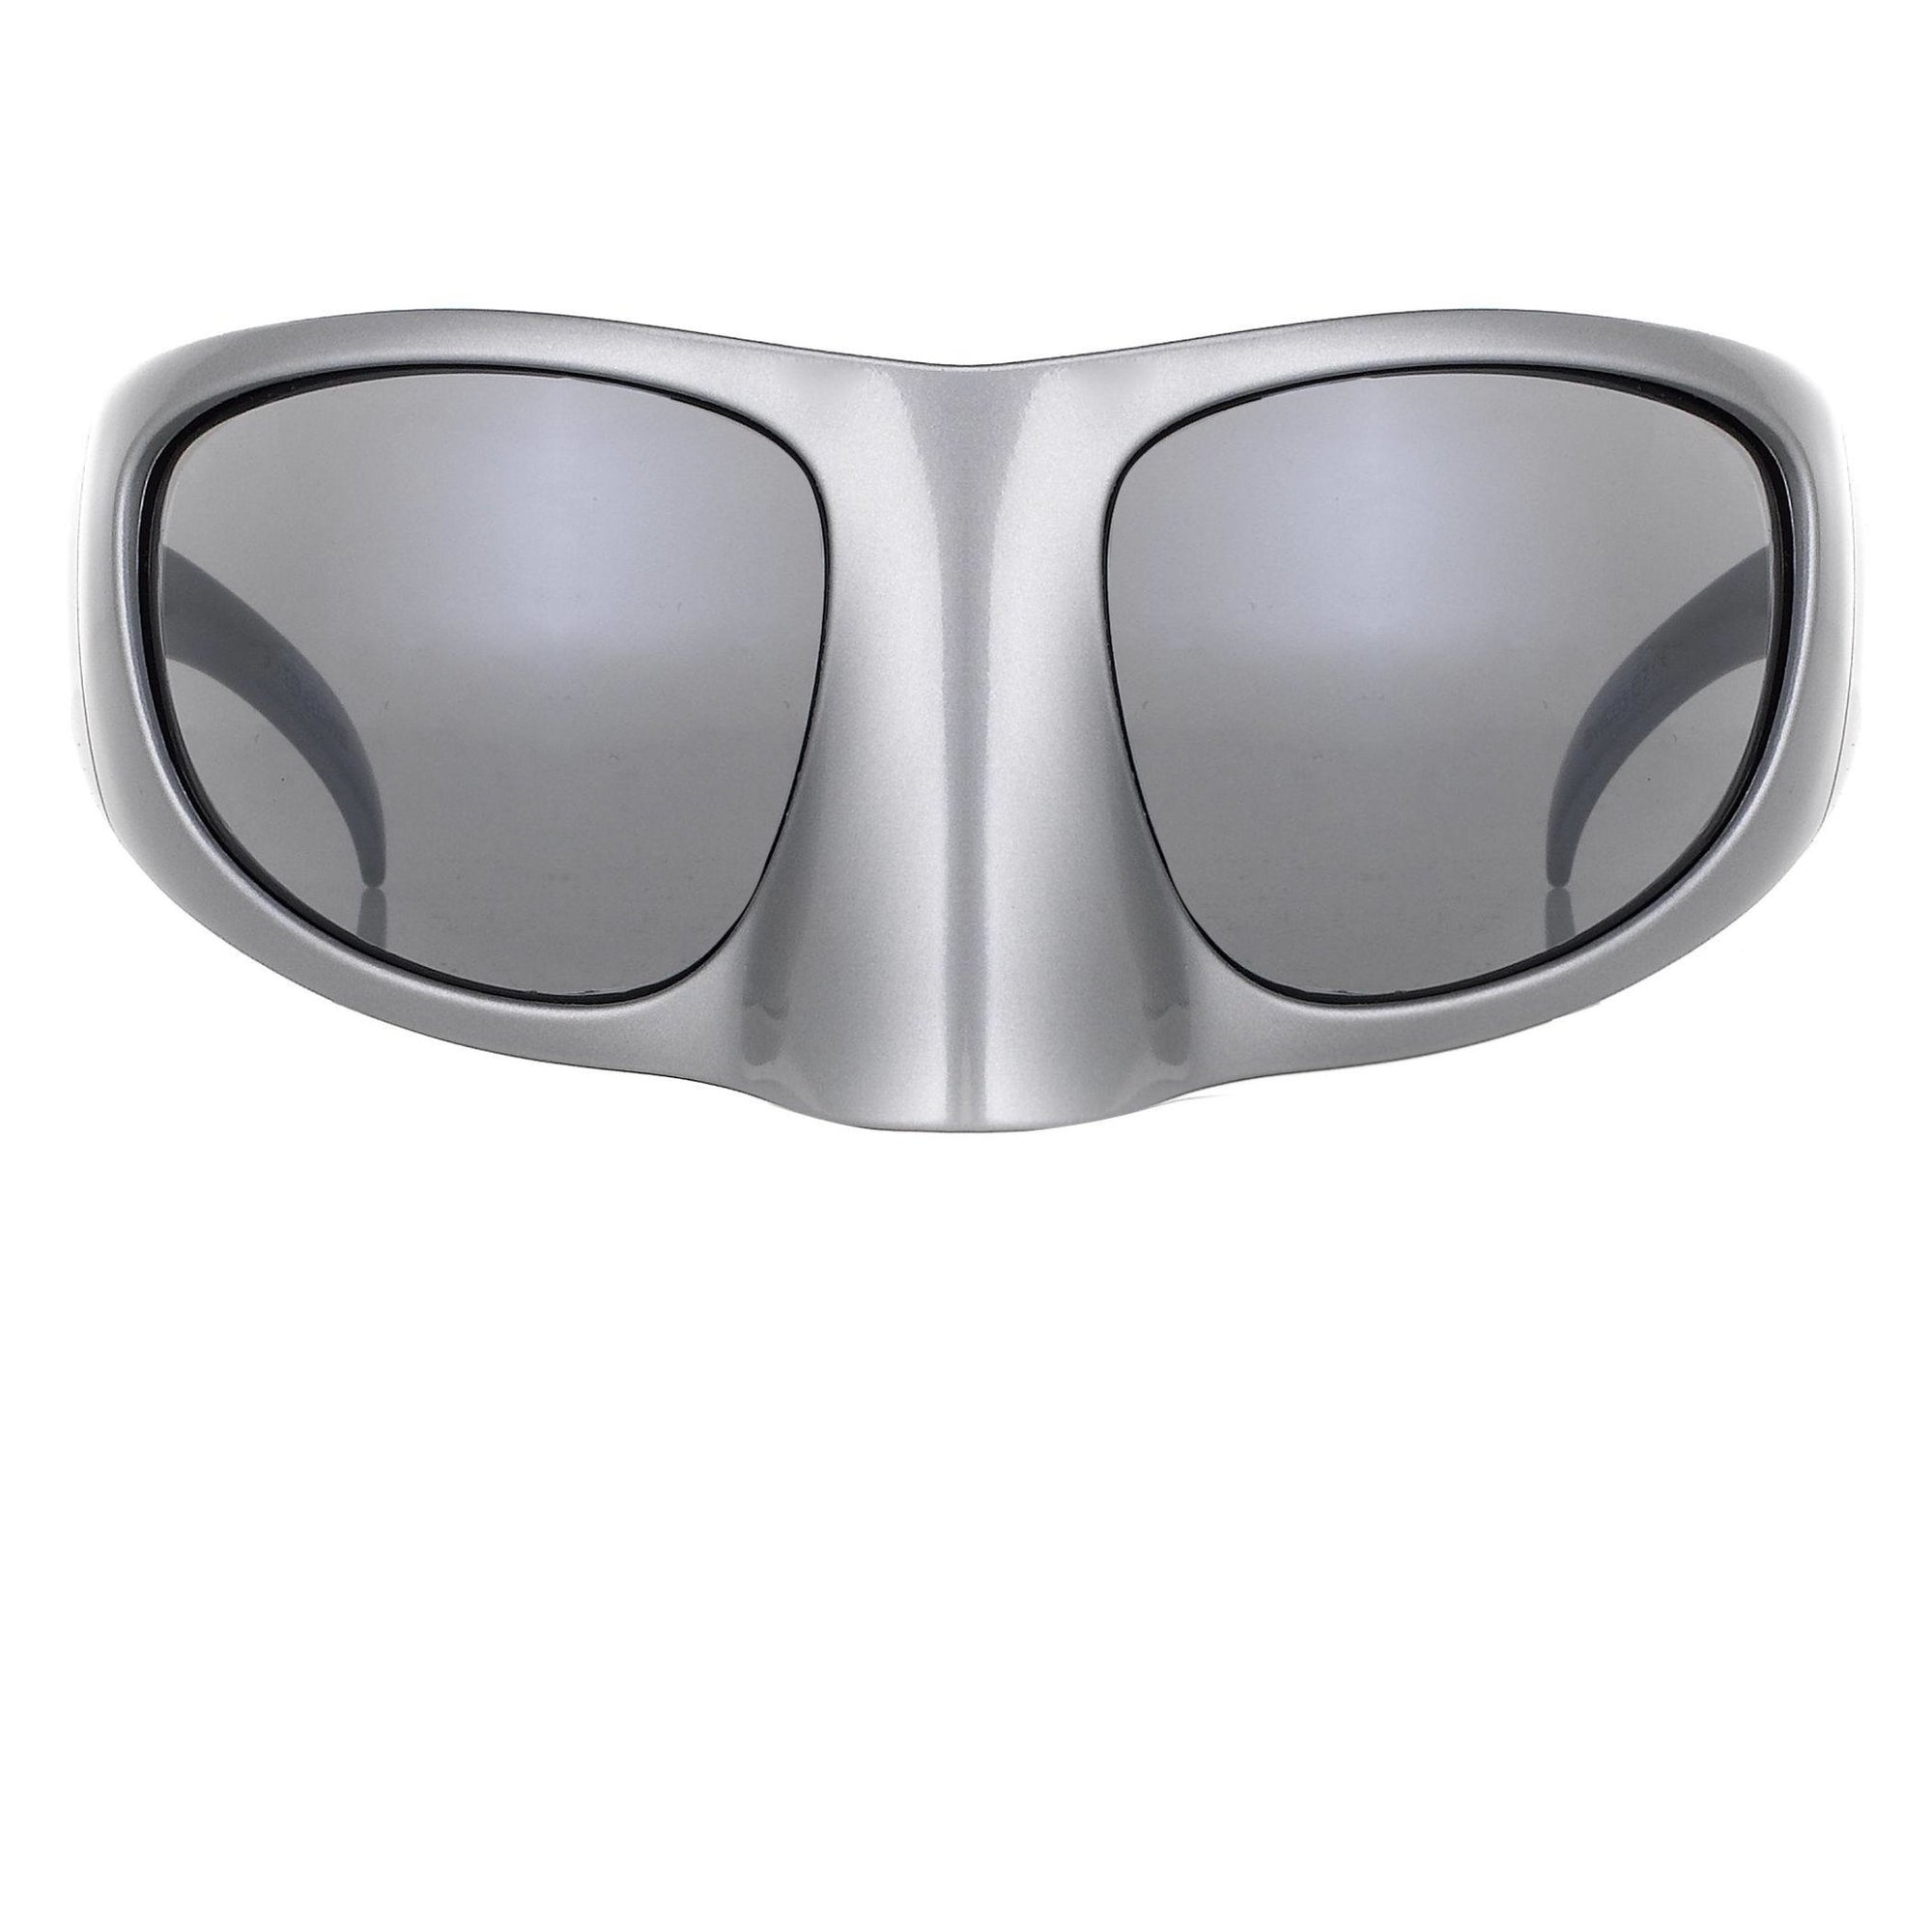 Bernhard Willhelm Silver Mask With Grey Lenses Sunglasses